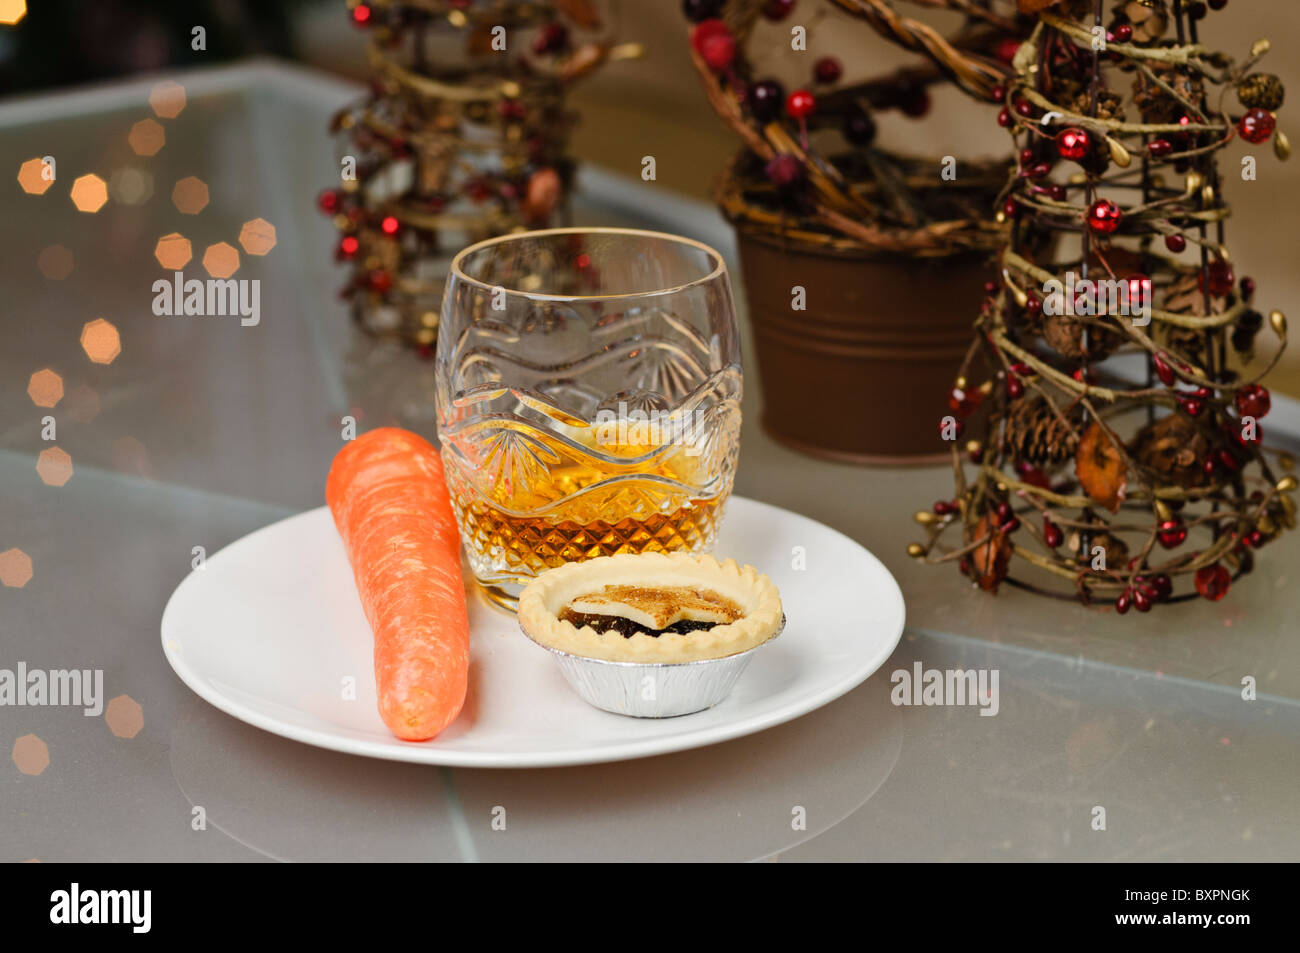 Mince pie carrot and glass of whiskey left on a plate on Christmas Eve for Santa Claus and Rudolph & Mince pie carrot and glass of whiskey left on a plate on Christmas ...